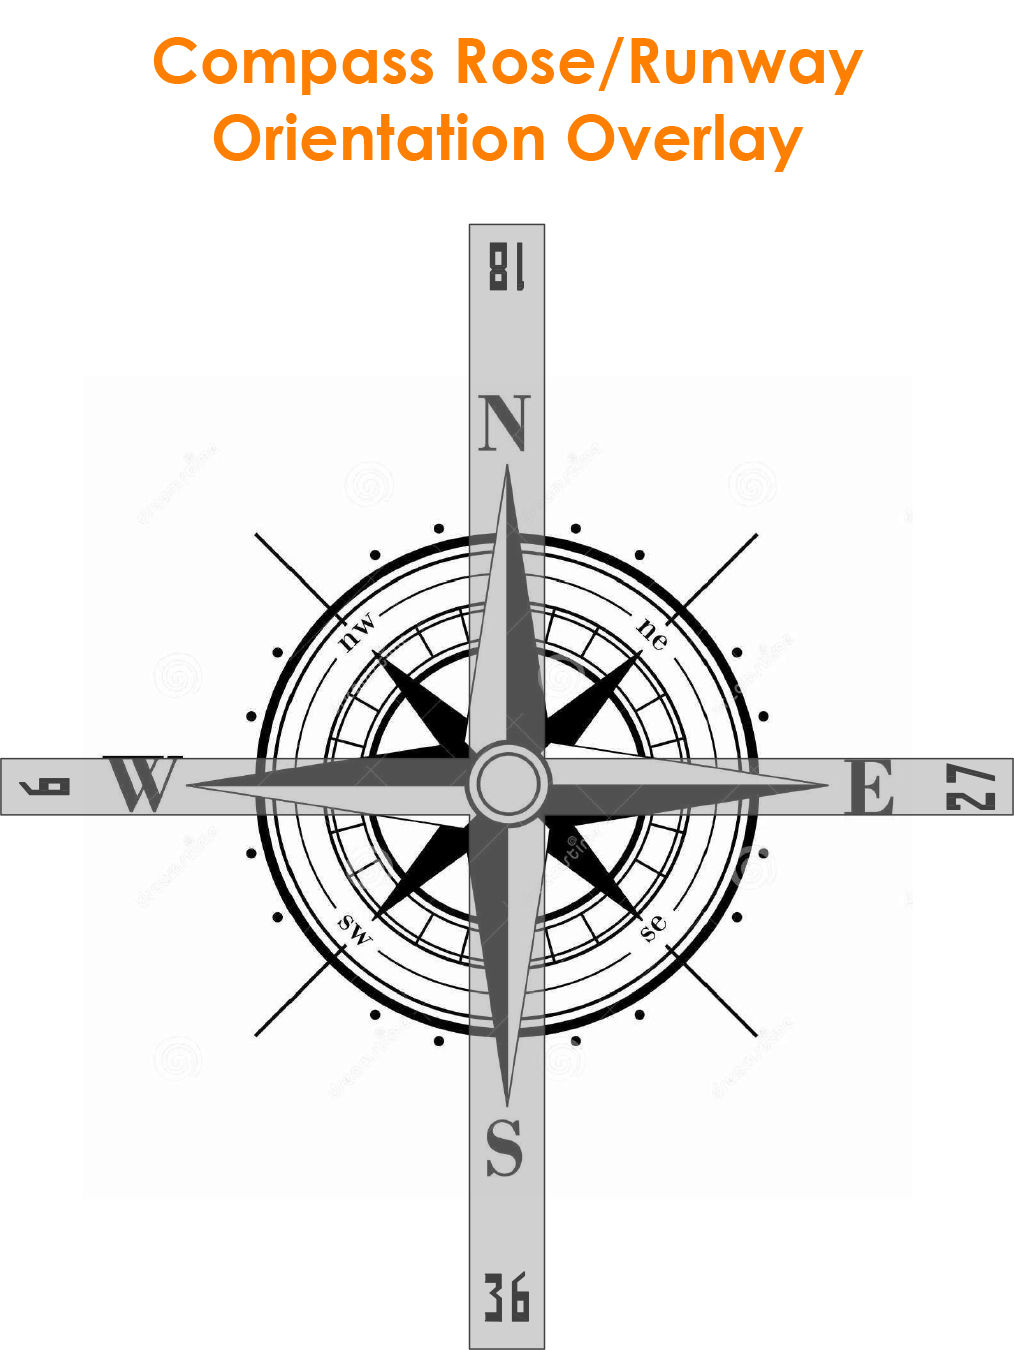 Airport runways what do those big numbers mean stantec compass bearing of one runway end to the nearest 10 degrees and truncating the last digit meaning runways are numbered from 1 to 36as per the diagram pooptronica